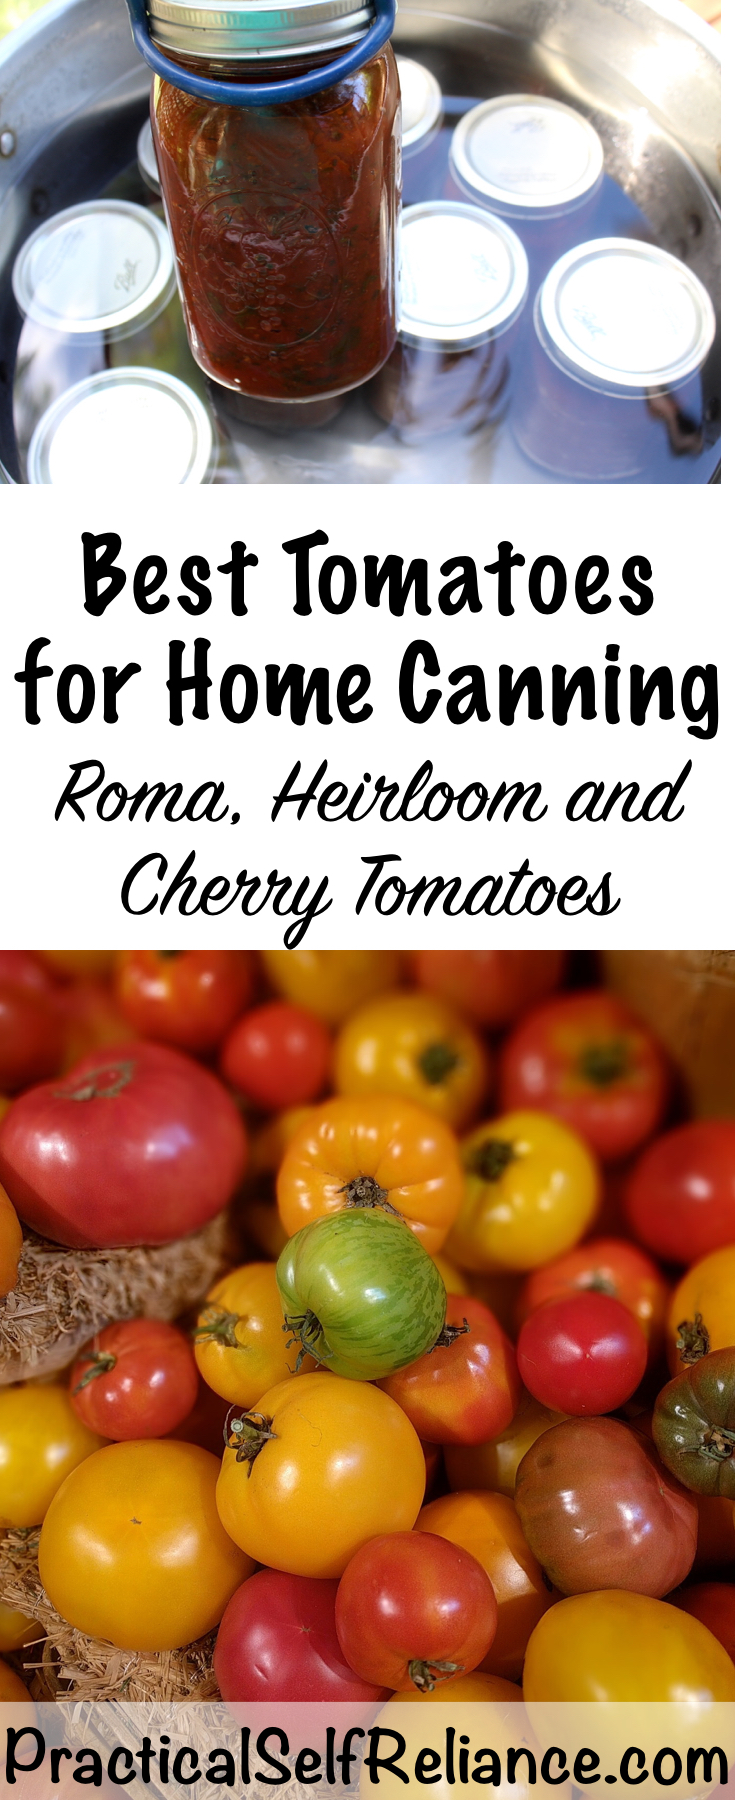 Best Tomatoes for Home Canning #tomatoes #tomatovarieties  #canning #foodpreservation #preservingfood #homestead #selfreliant #selfsufficiency #homesteading #canning #foodpreservation #preservingfood